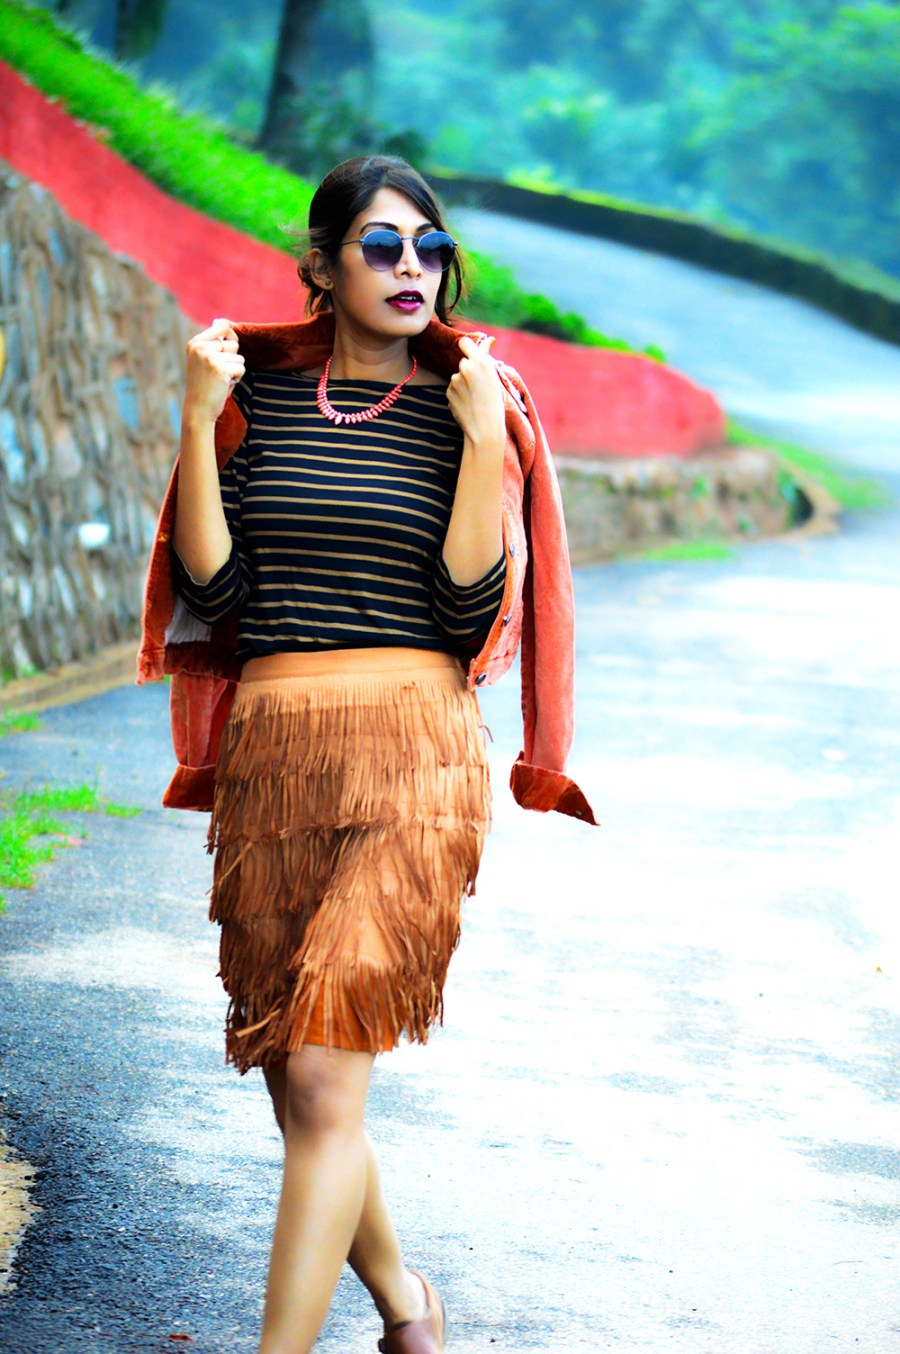 fashion, style, street style, street fashion, sarmistha goswami, style over coffee, pankaj jyoti barua, fashion blogger, indian fashion blogger, summer fashion, indian street style photography, fringe skirt, corduroy jacket, striped tee, lenskart sunglasses, Summer Street Style-4